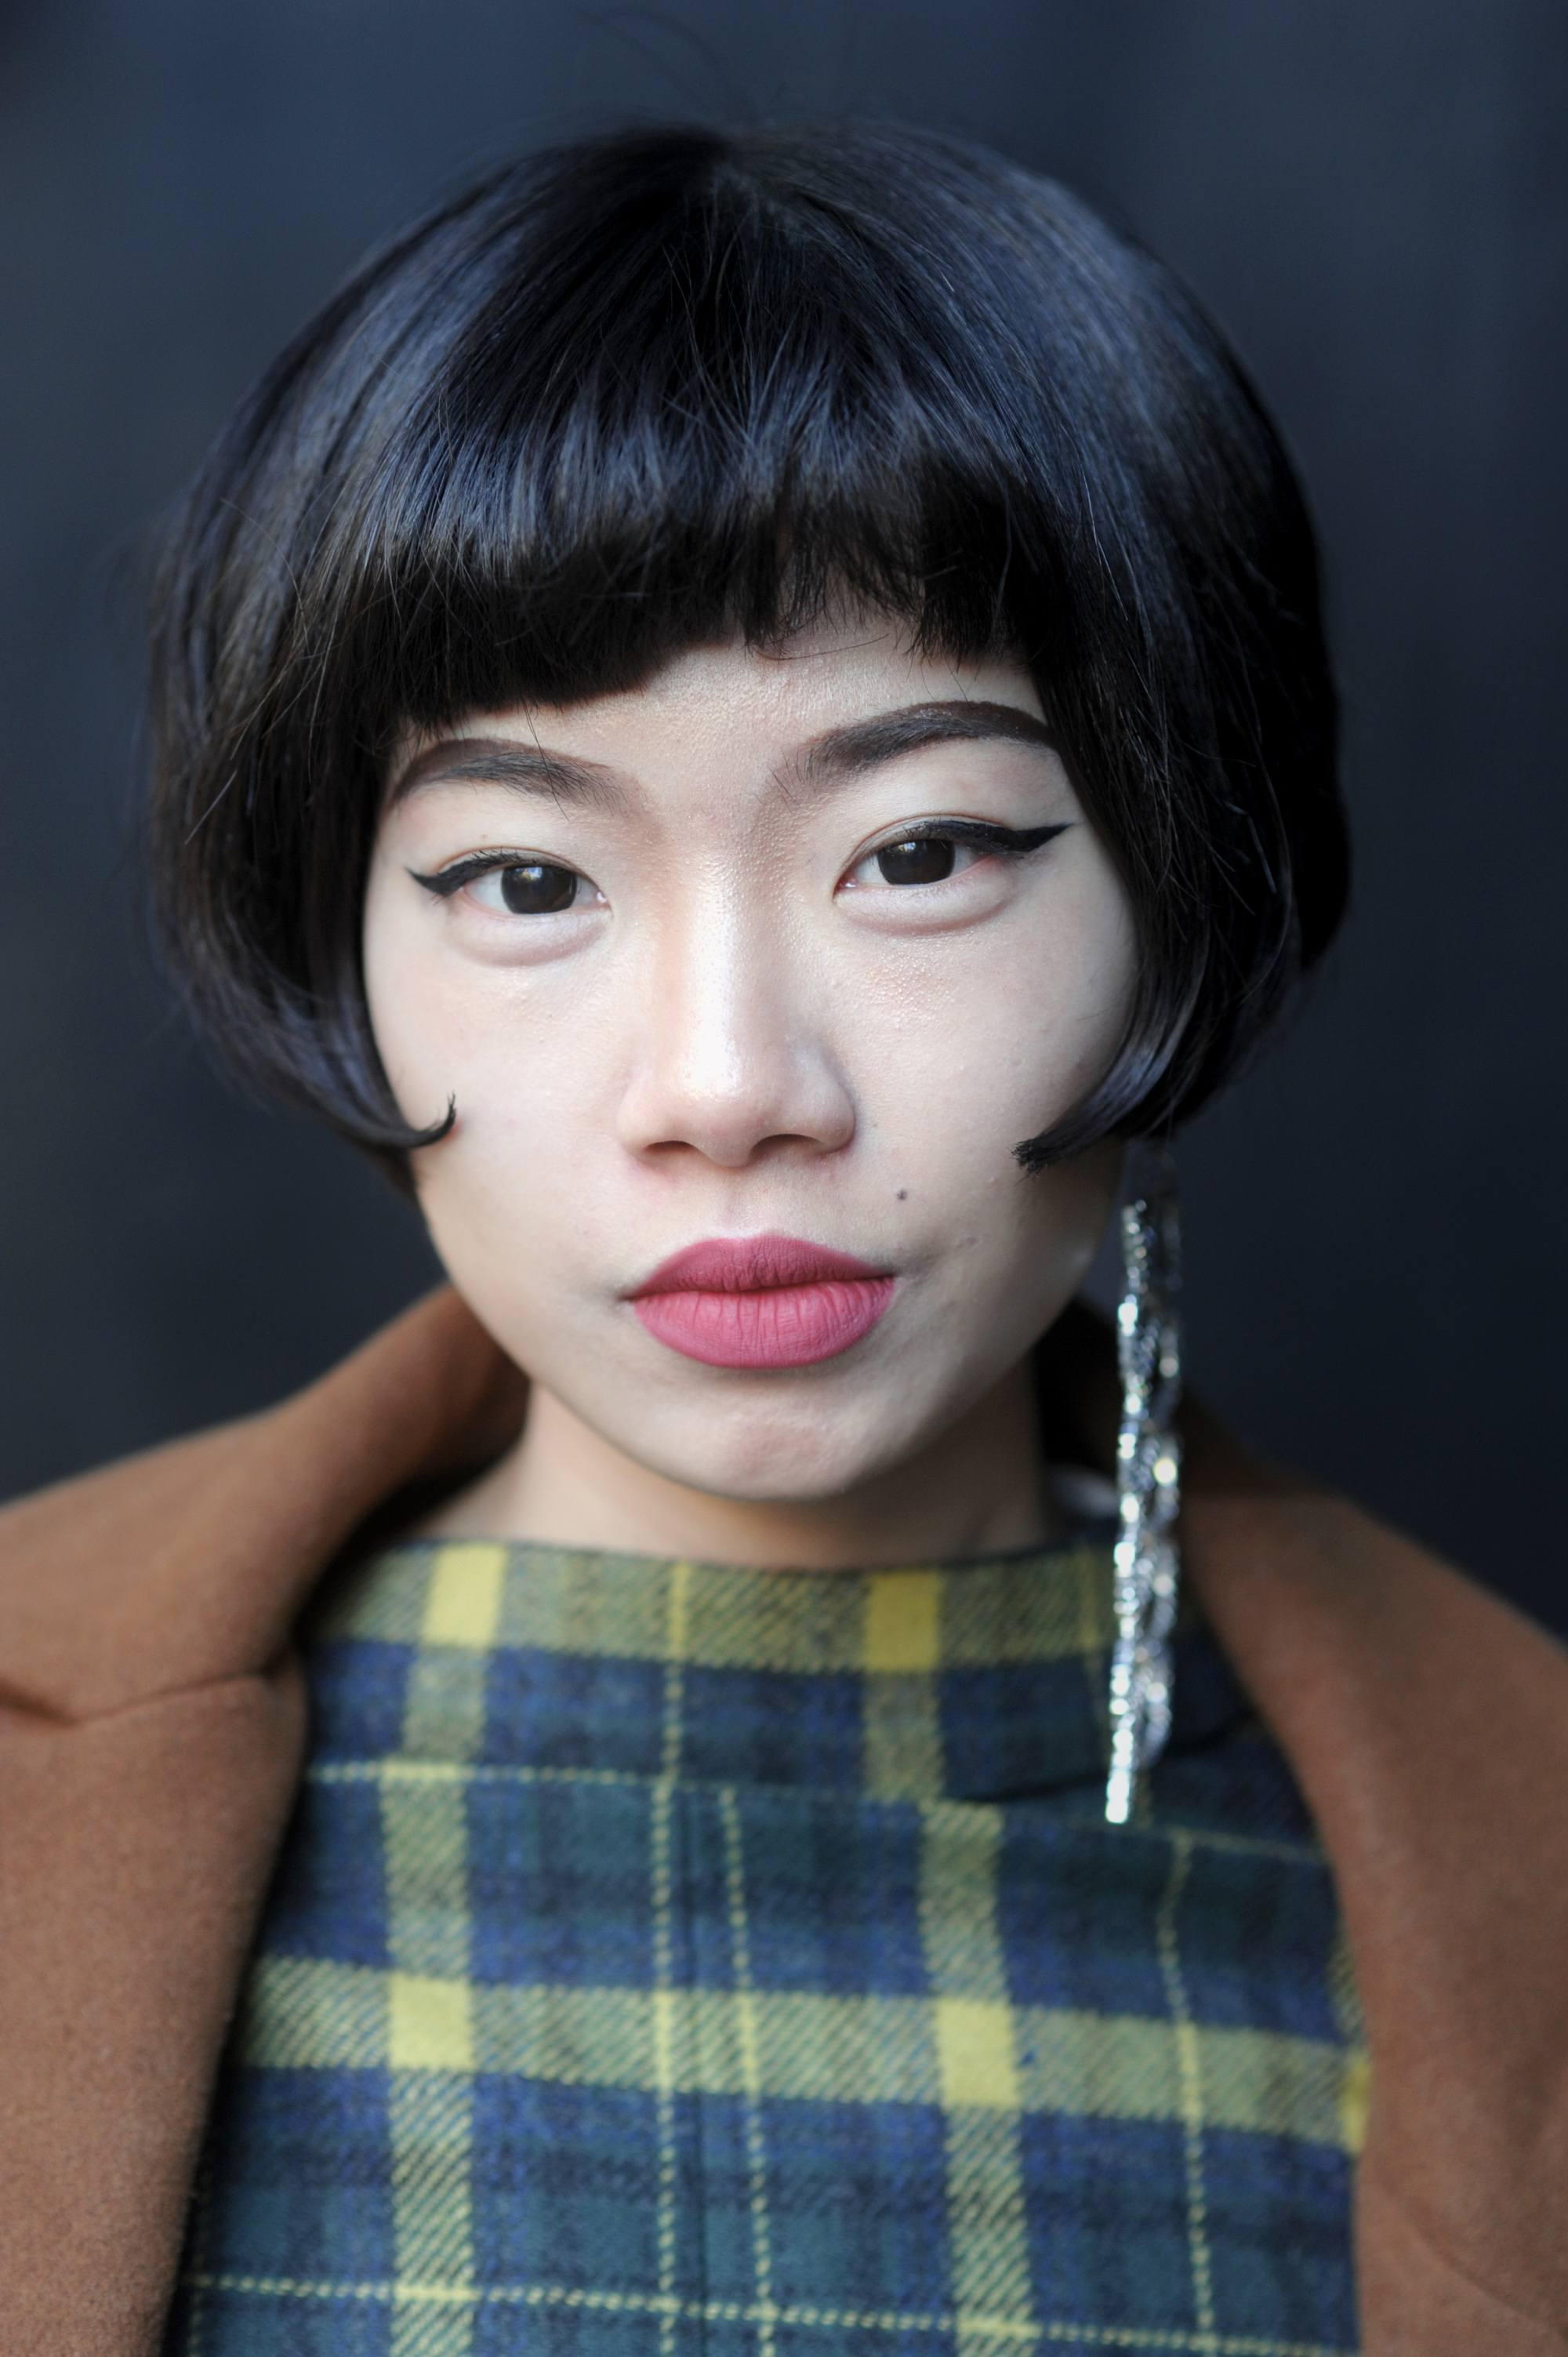 chanel haircut: close up shot of harper lin with short bob hairstyle and sleek blunt bob, wearing checked dress and statement earring